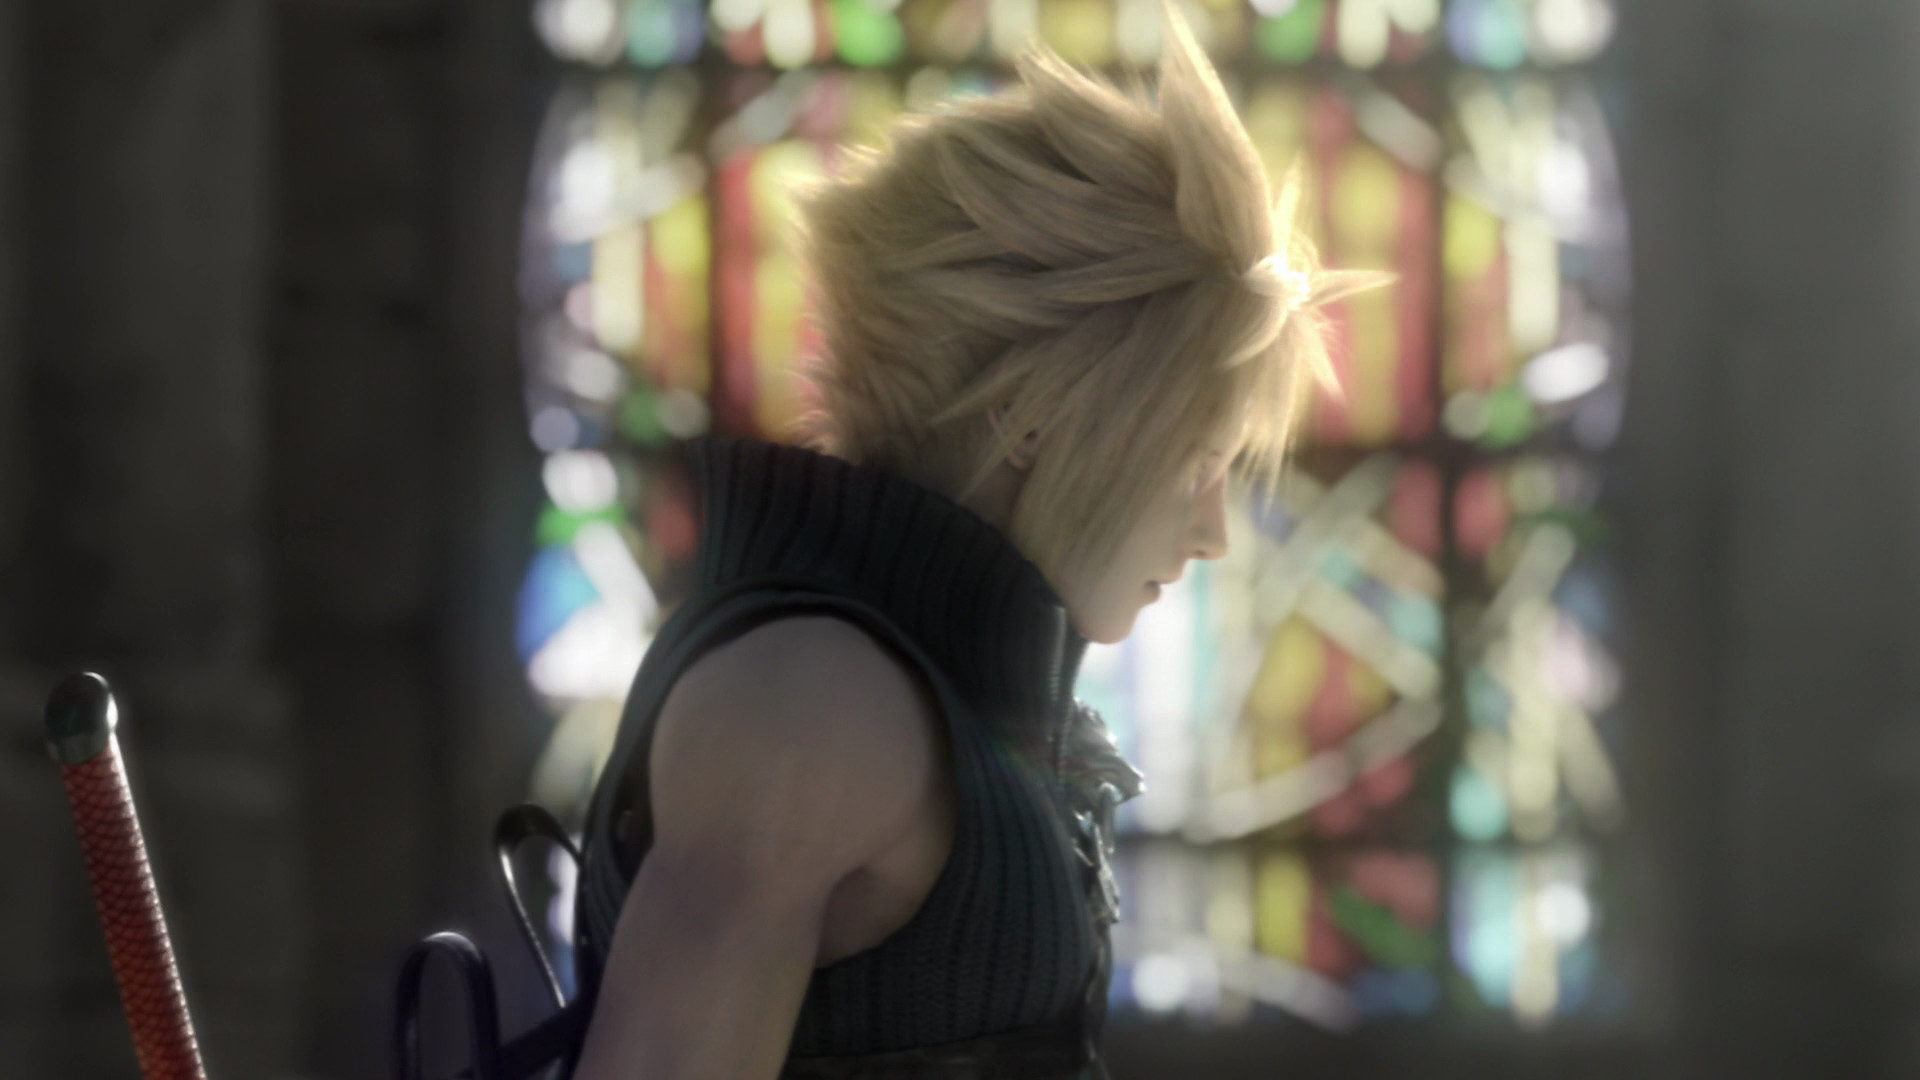 1920x1080 Anime Final Fantasy Vii Advent Children Sfondo | Final Fantasy <3 .